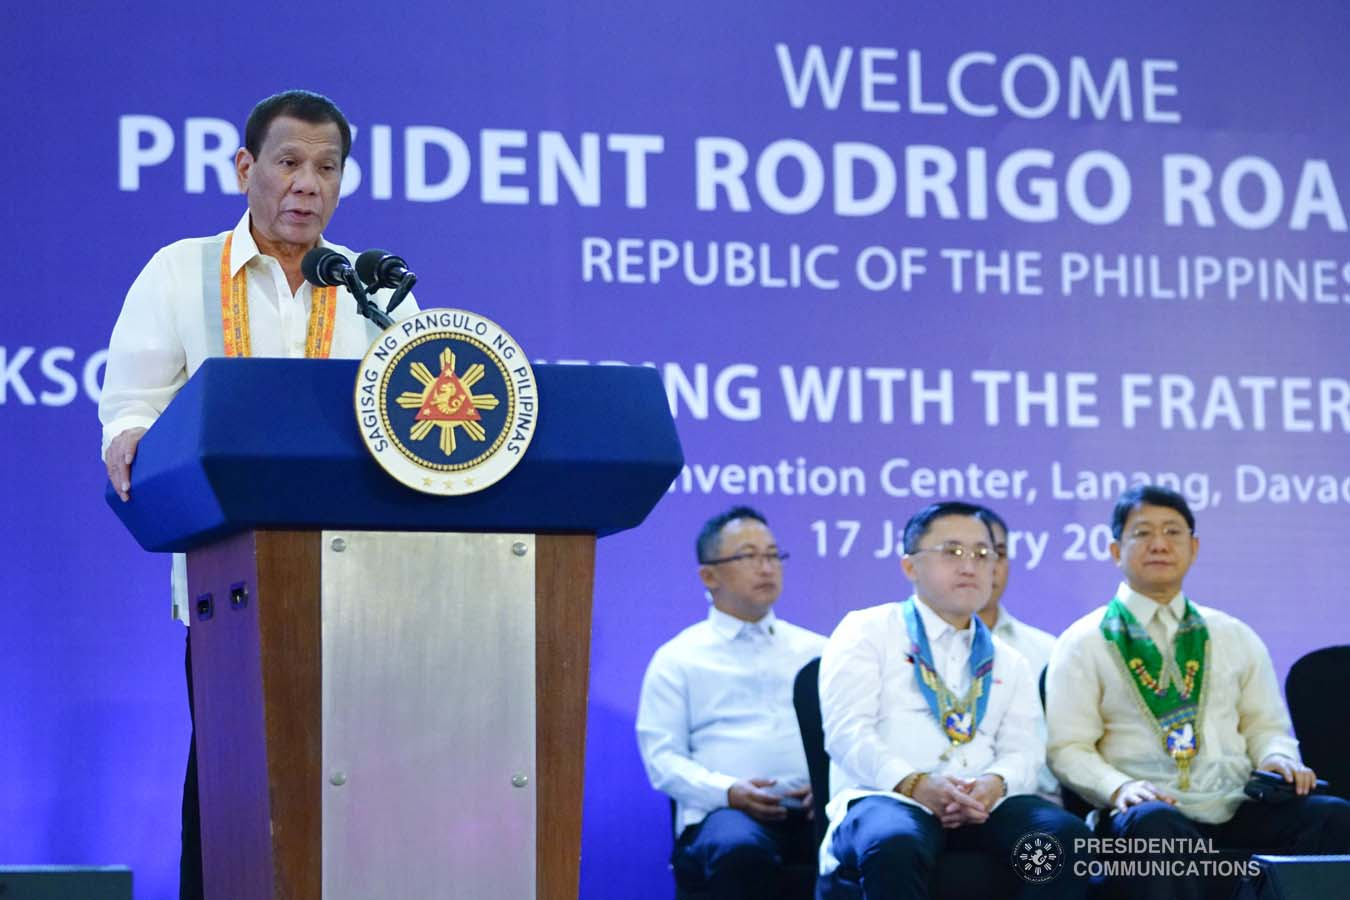 President Rodrigo Roa Duterte delivers a speech during the thanksgiving gathering with The Fraternal Order of Eagles (TFOE) at the SMX Convention Center in Davao City on January 17, 2020. JOEY DALUMPINES/PRESIDENTIAL PHOTO